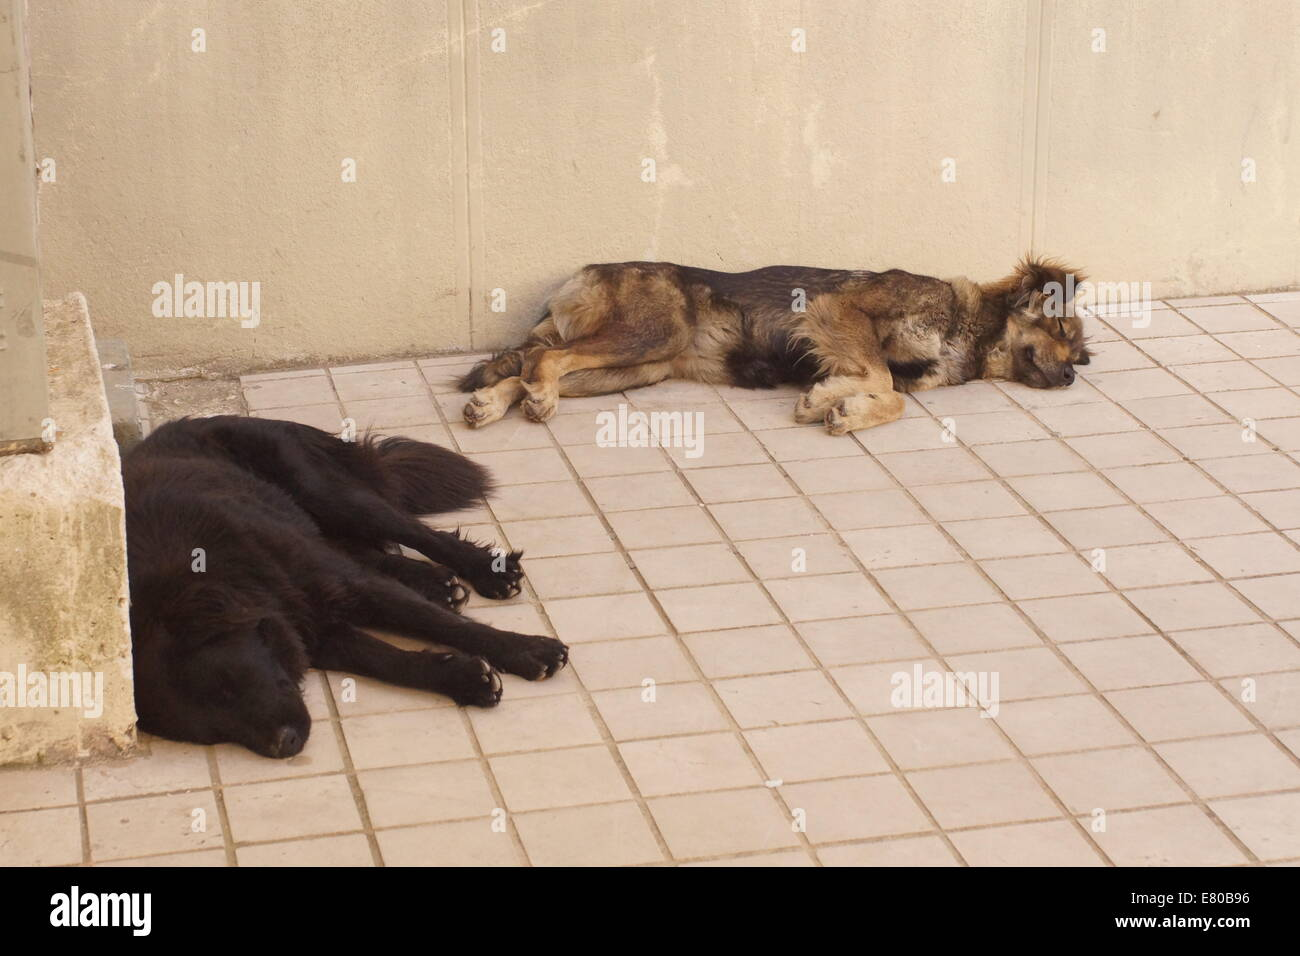 2 sleeping dogs lie - Stock Image